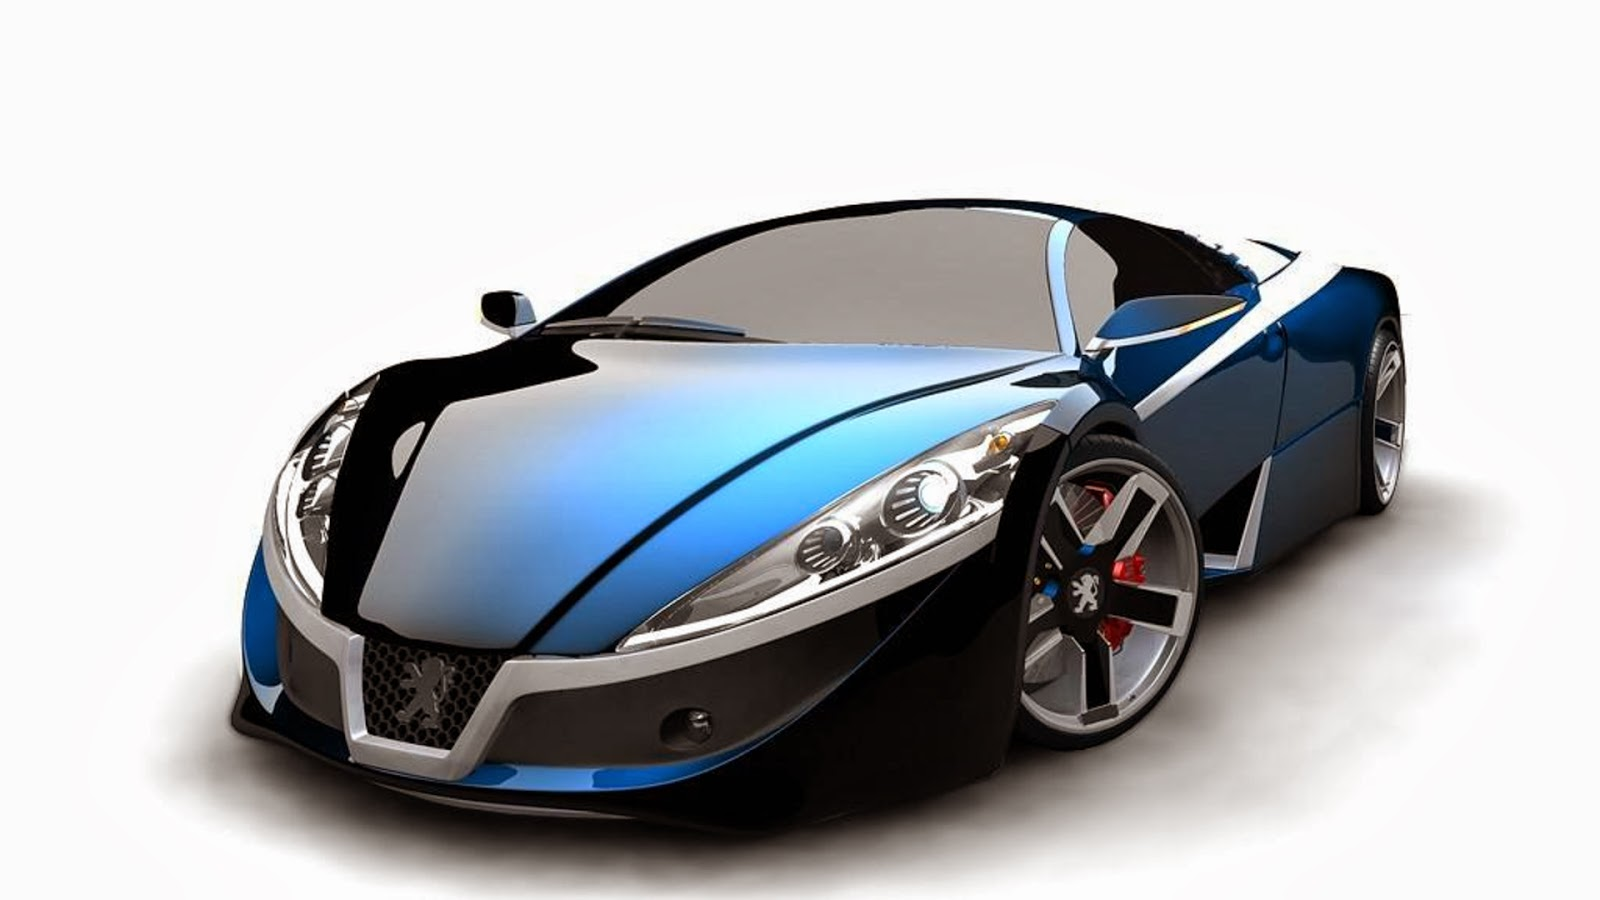 Most Exotic Cars & Car Makers in the World: Top 10 Hot Cars List